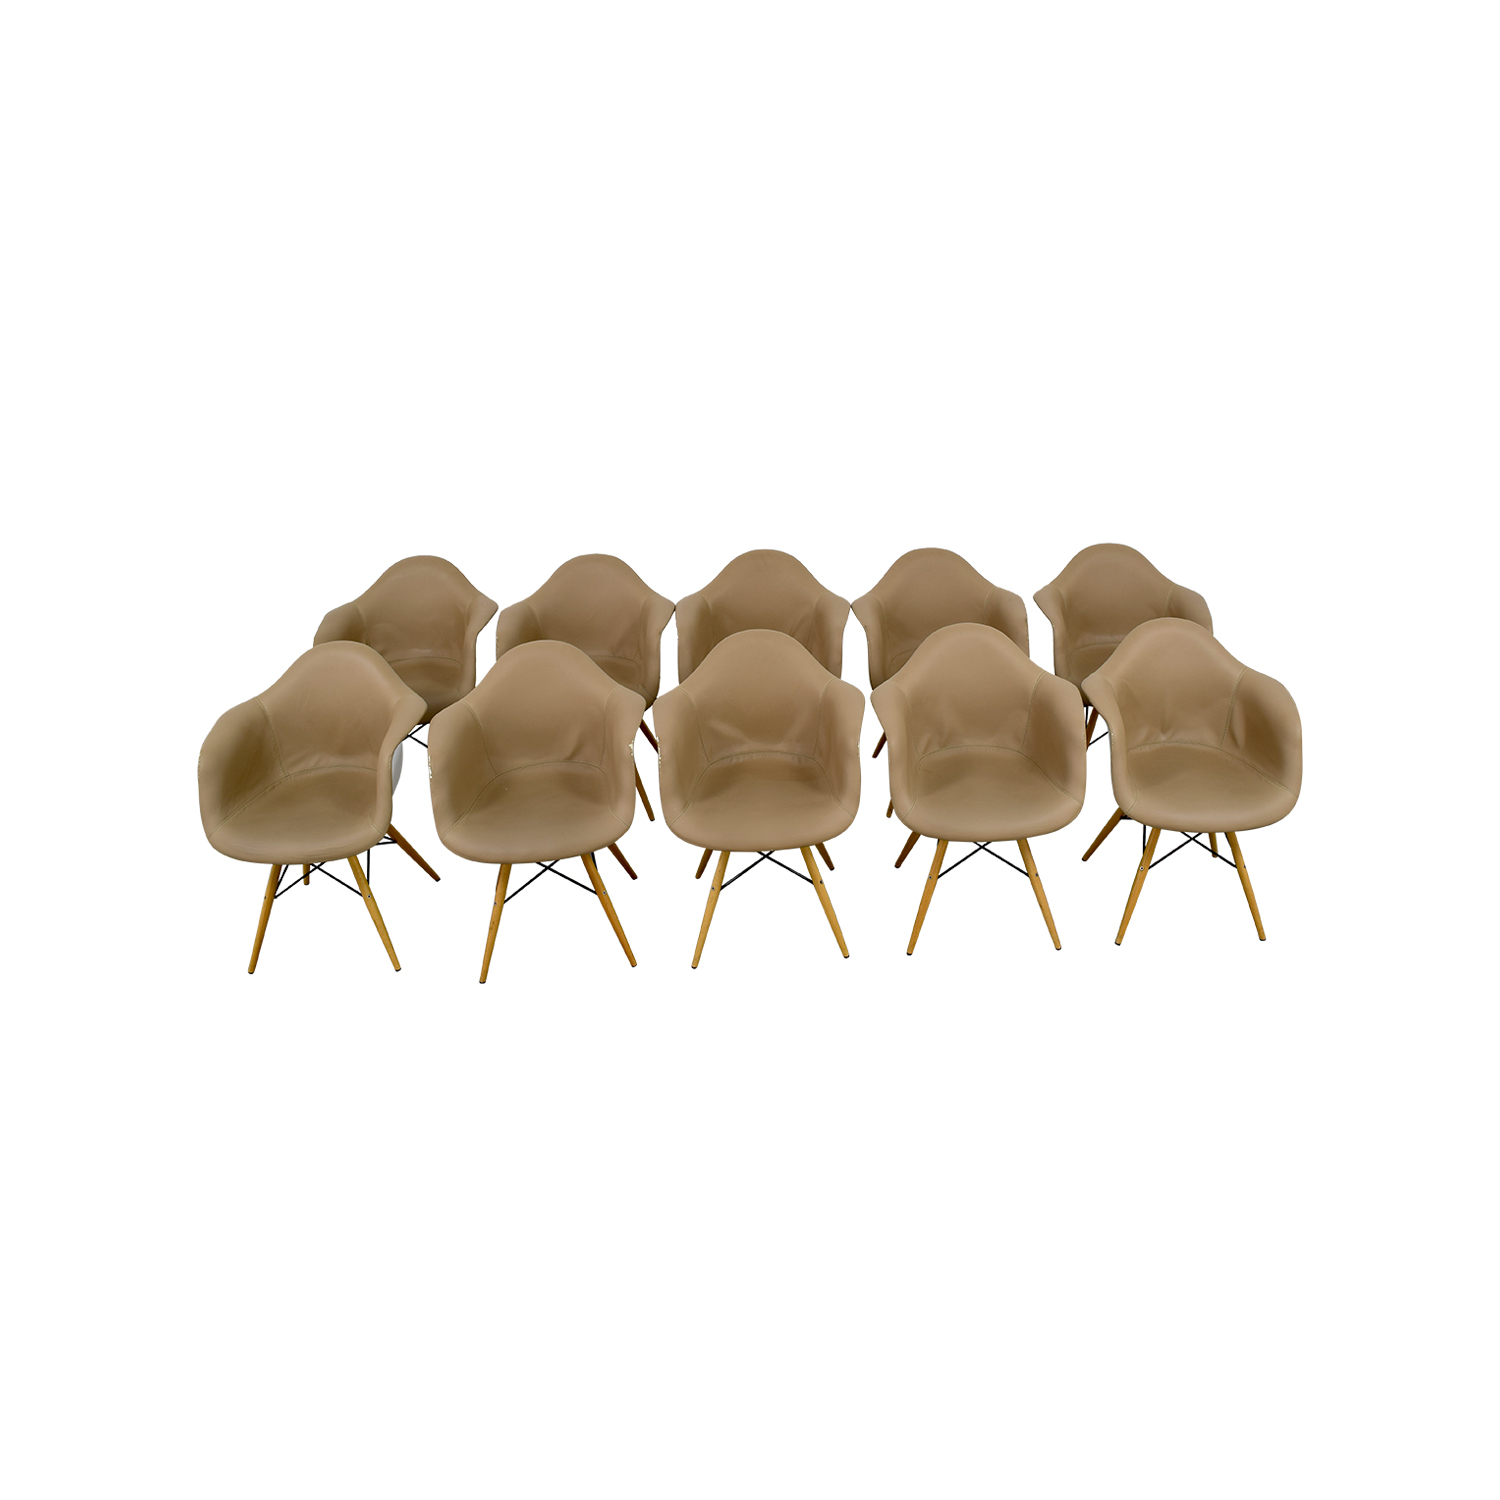 Room & Board Room & Board Beige Leather Chairs for sale